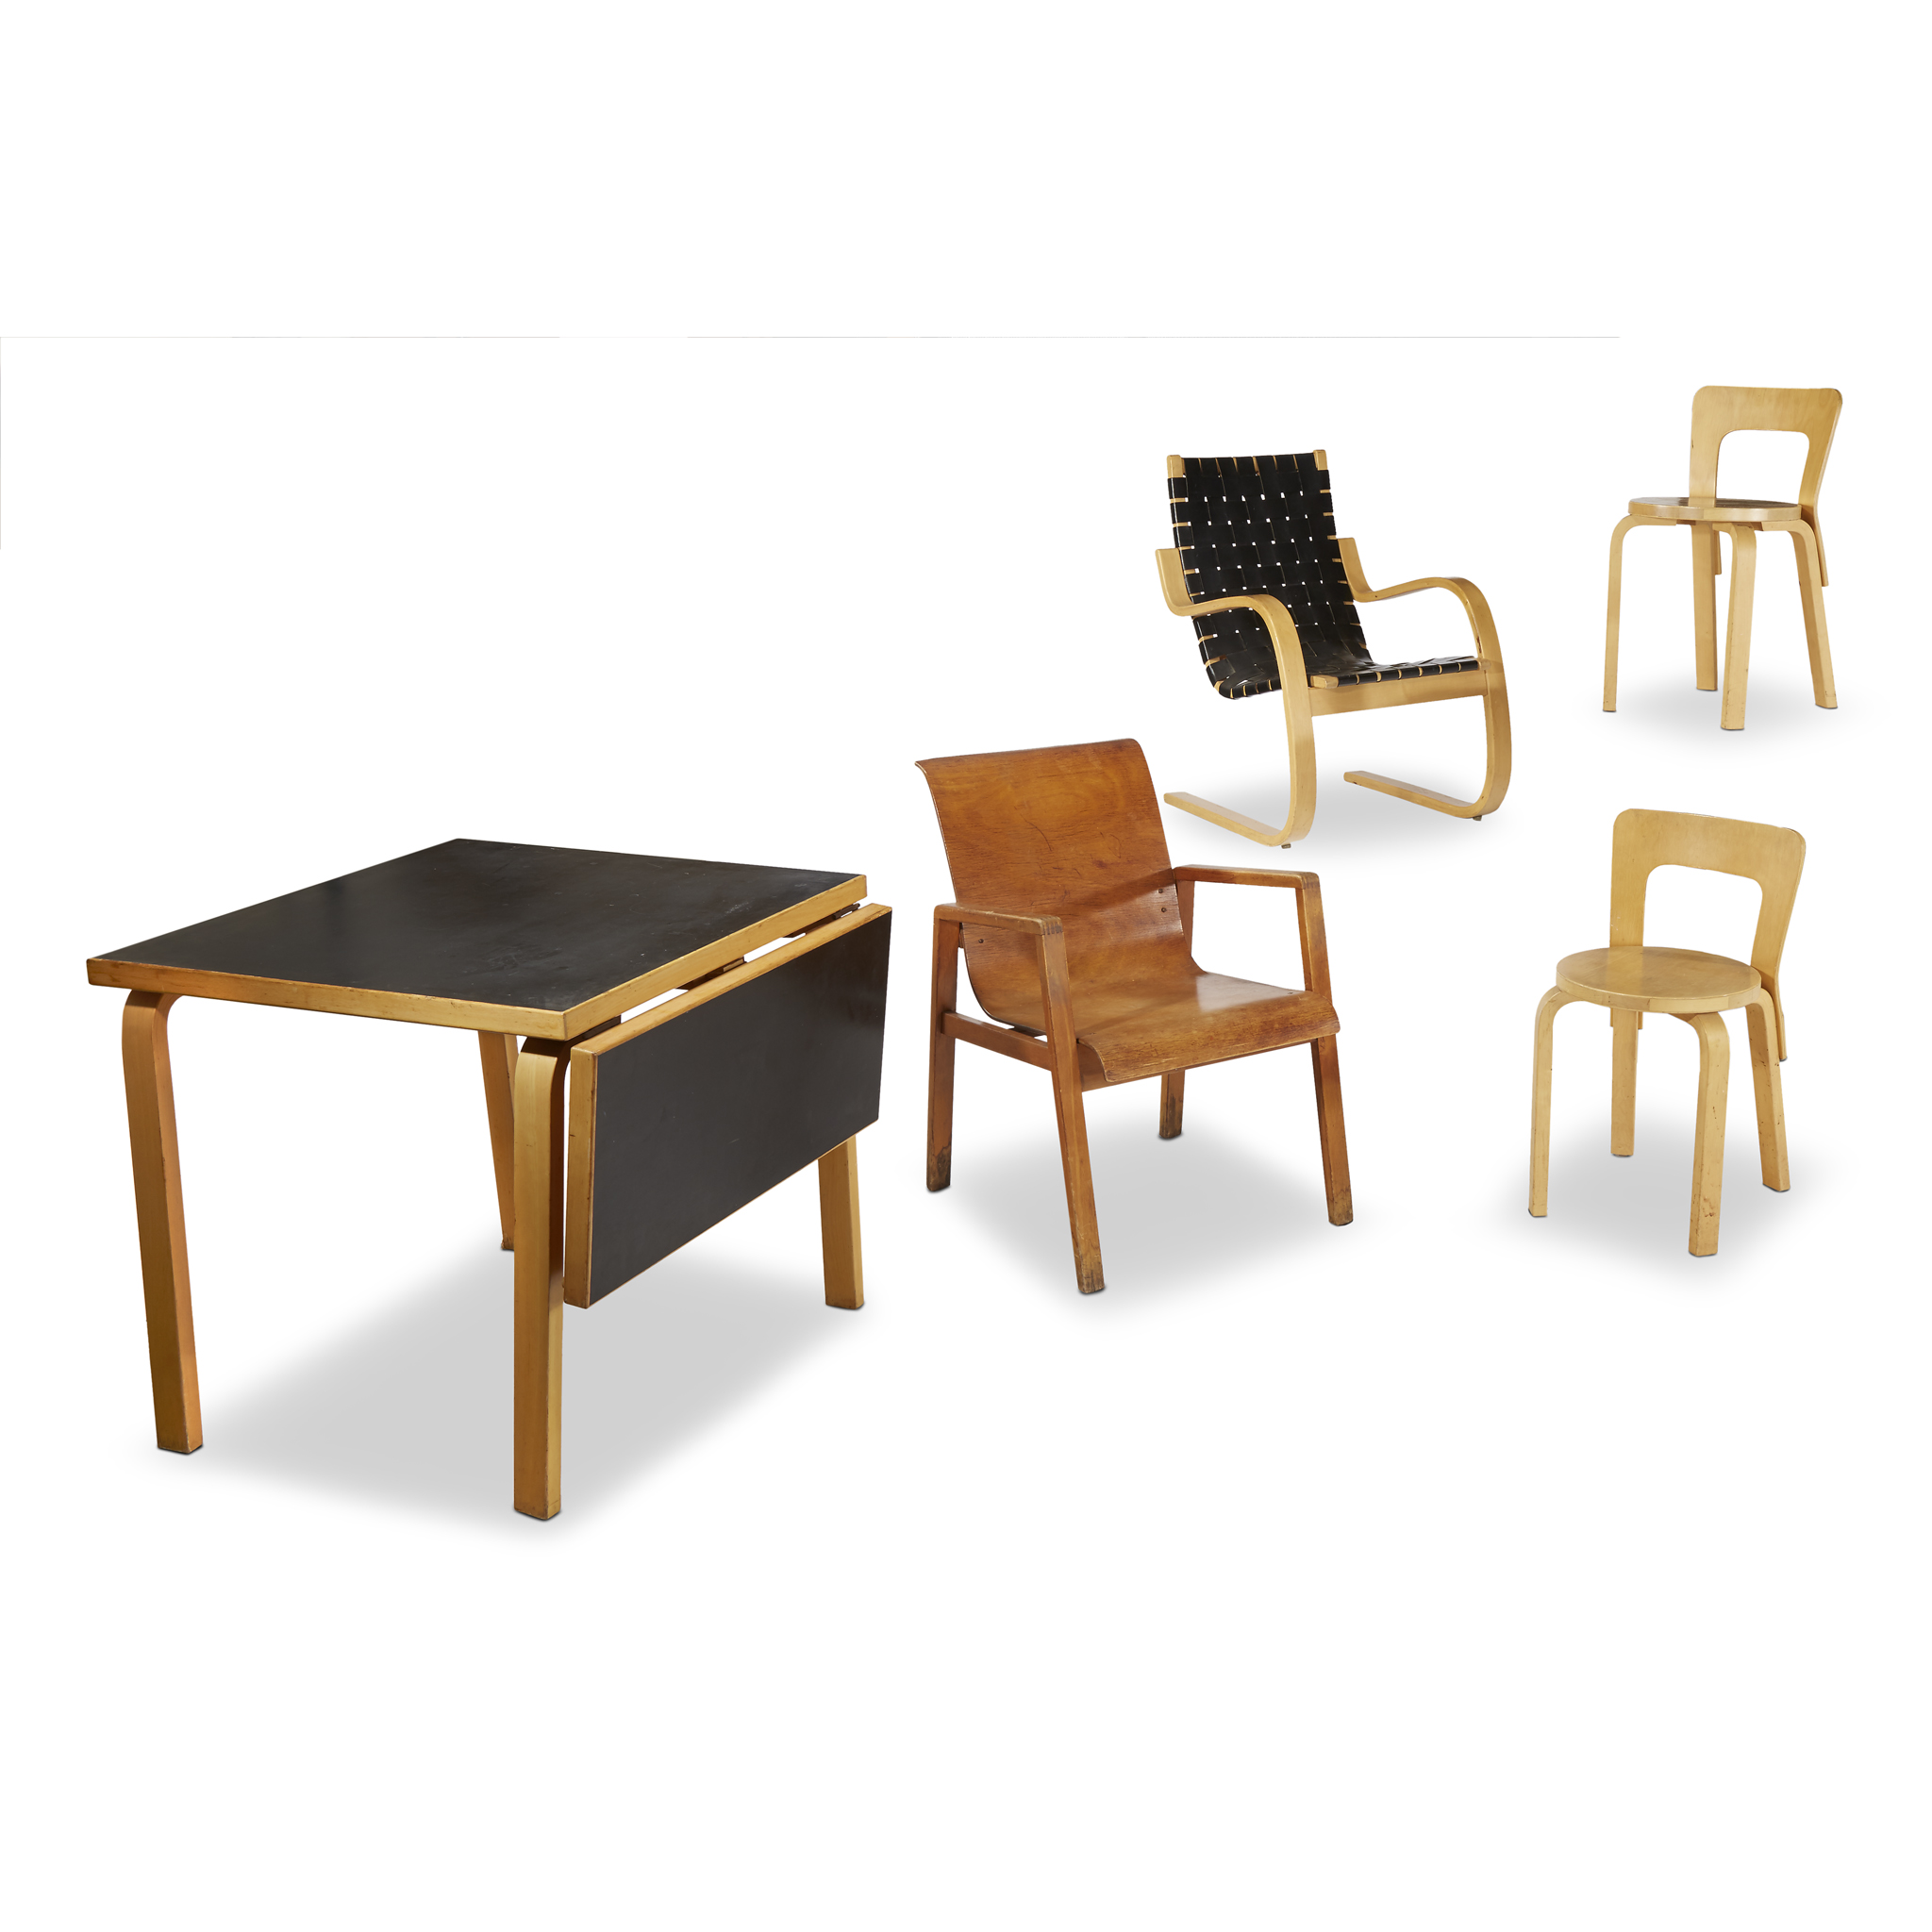 Modern Furniture Auction freeman's to auction off midcentury modern furniture for every